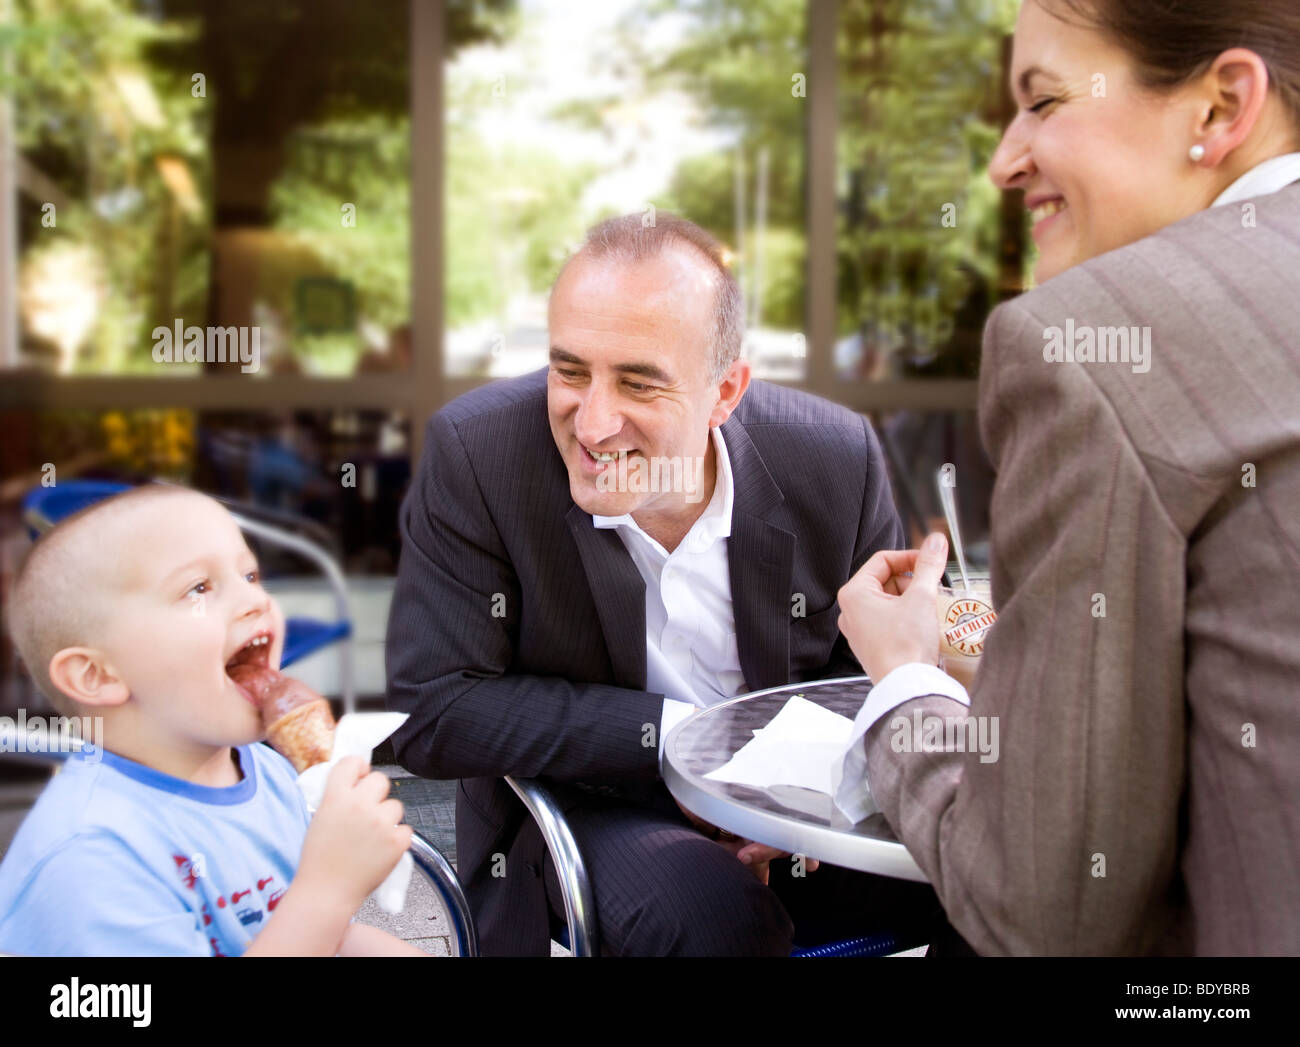 business couple with son in outdoor cafe - Stock Image